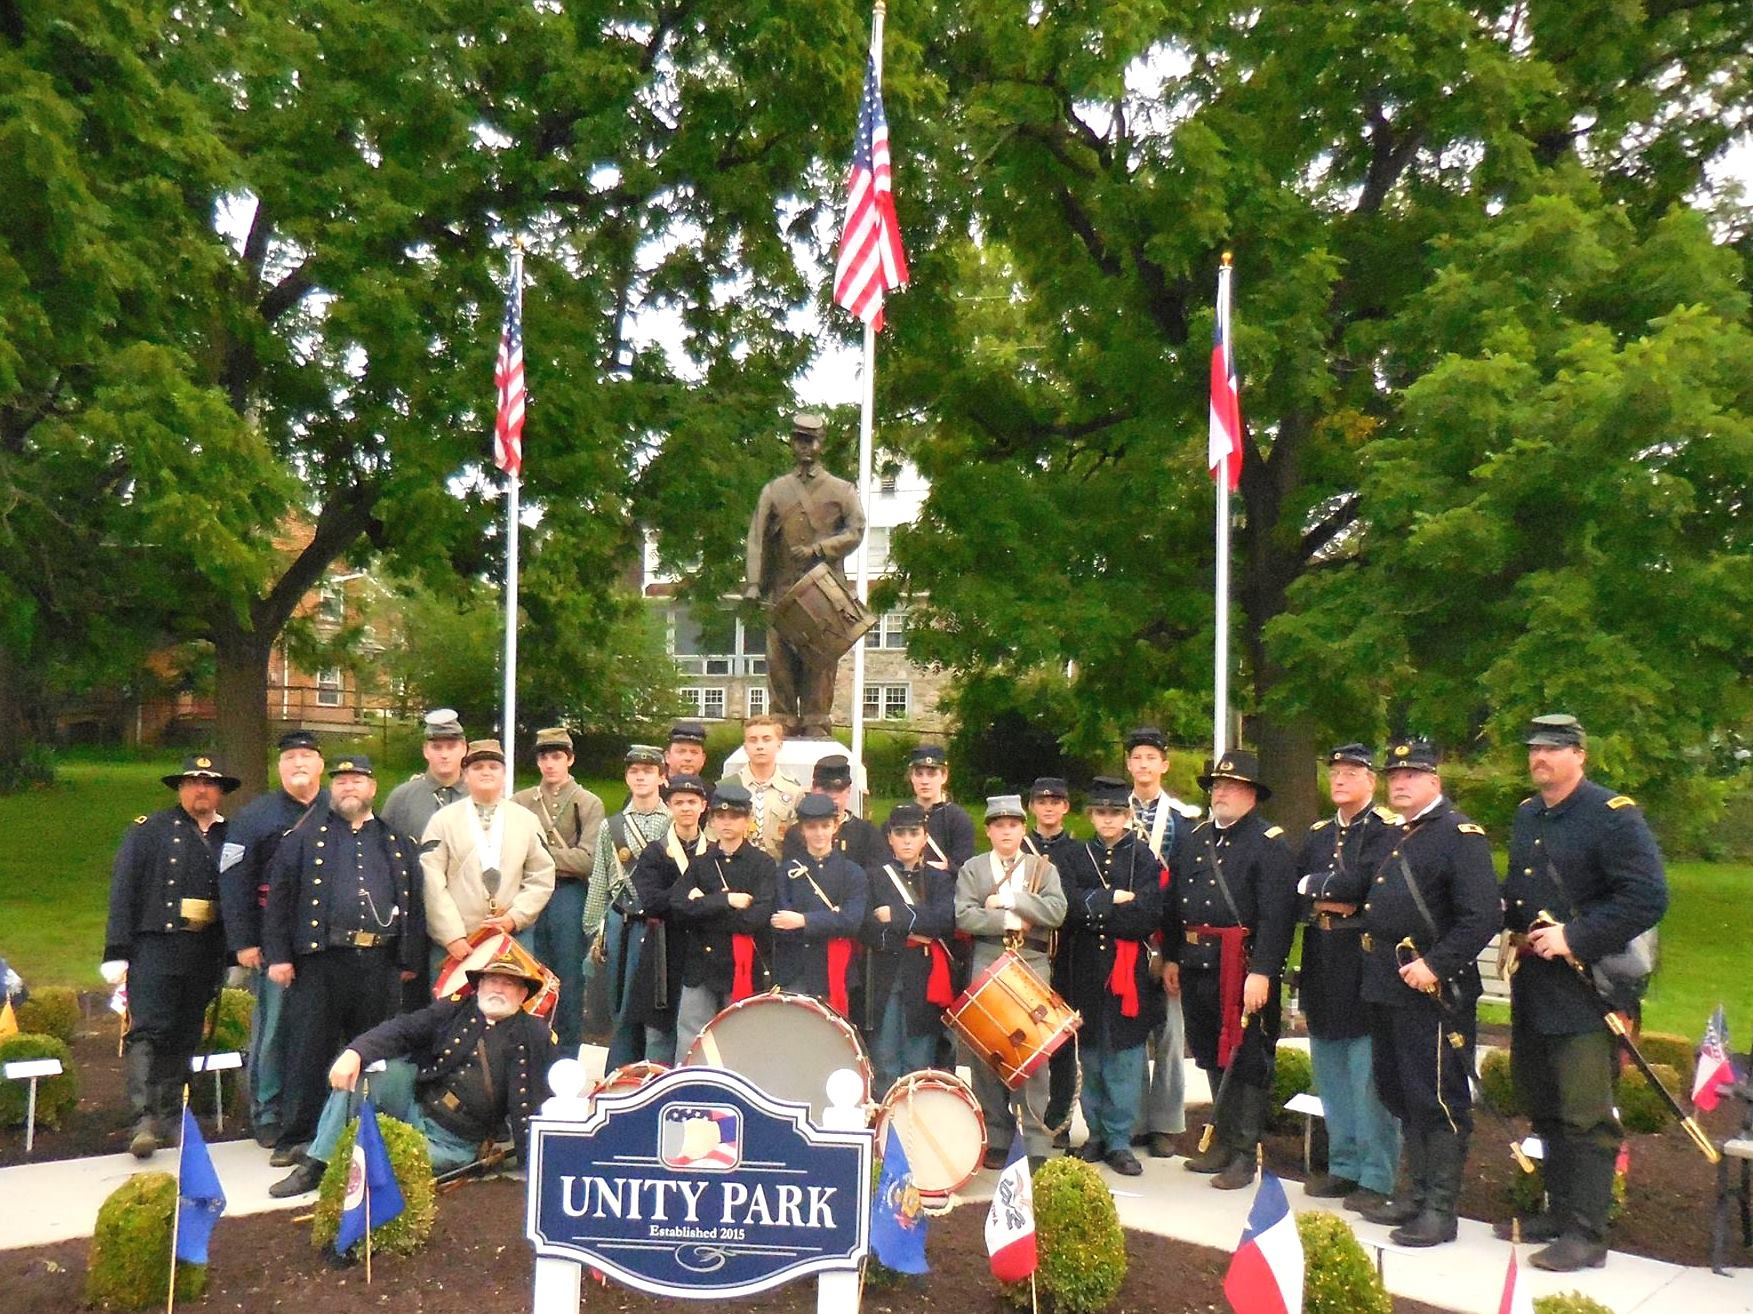 Dedication of Unity Park in Gettysburg in 2015. The brainchild of B.S.A. Eagle Scout Andrew Adam honors the musicians who served in the Union and Confederate armies.